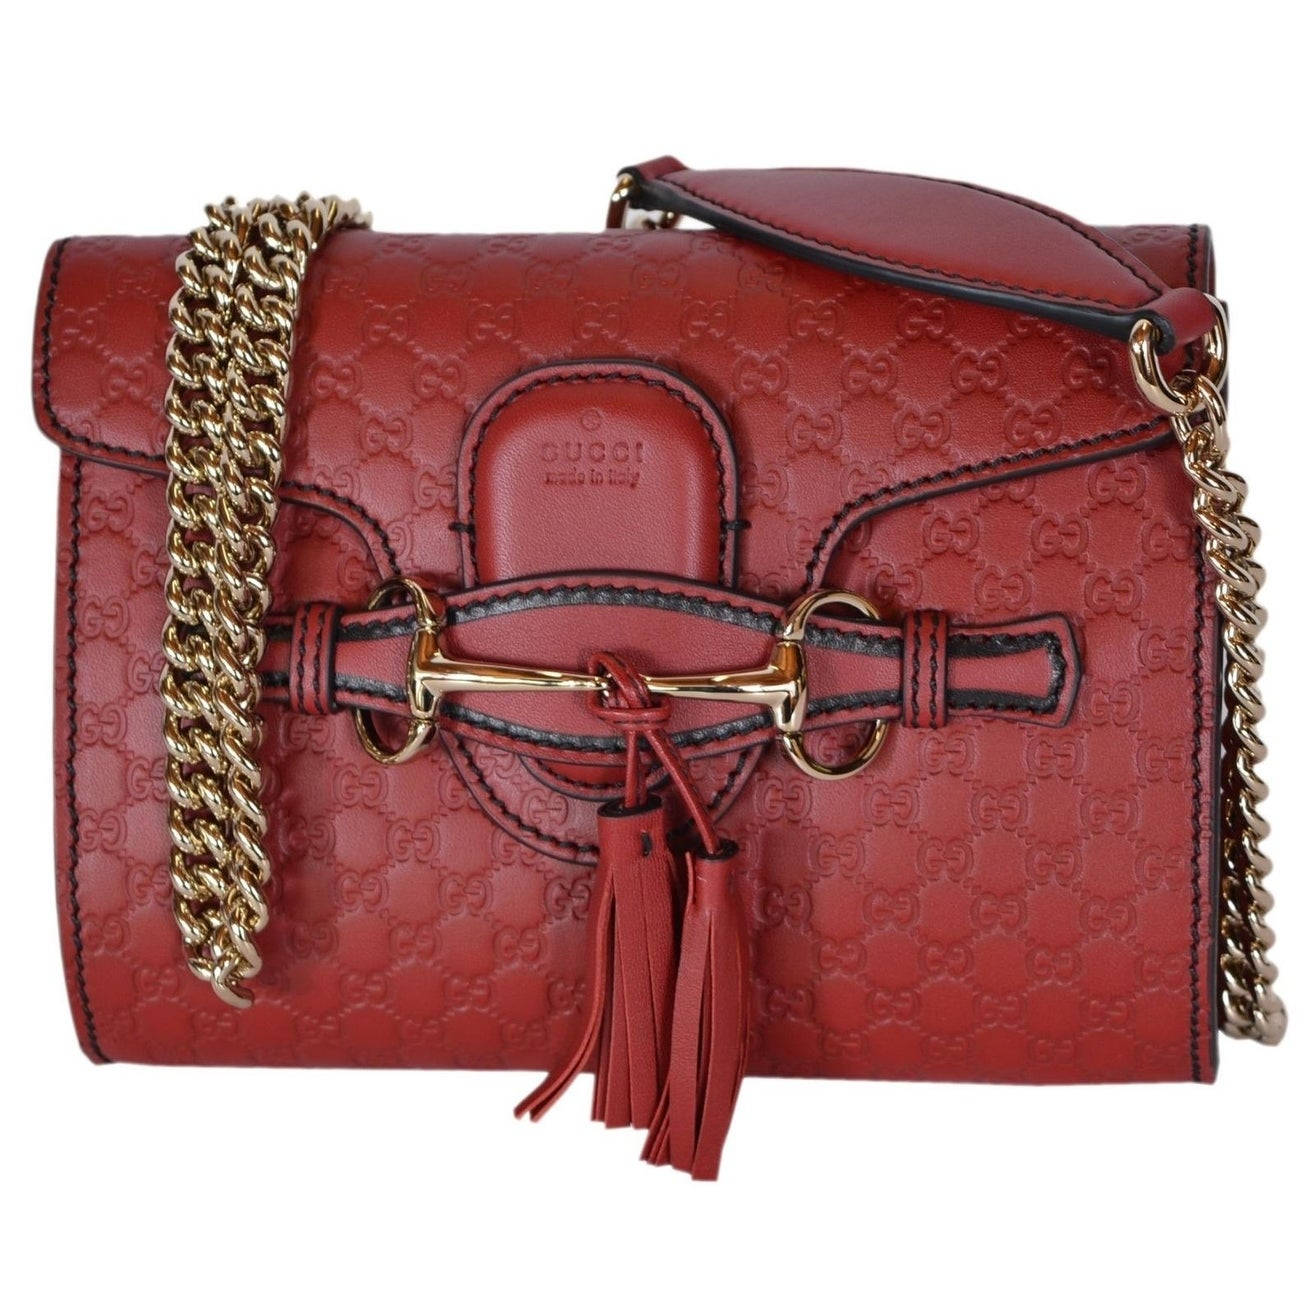 9582308edb5b Gucci Designer Store | Shop our Best Clothing & Shoes Deals Online at  Overstock